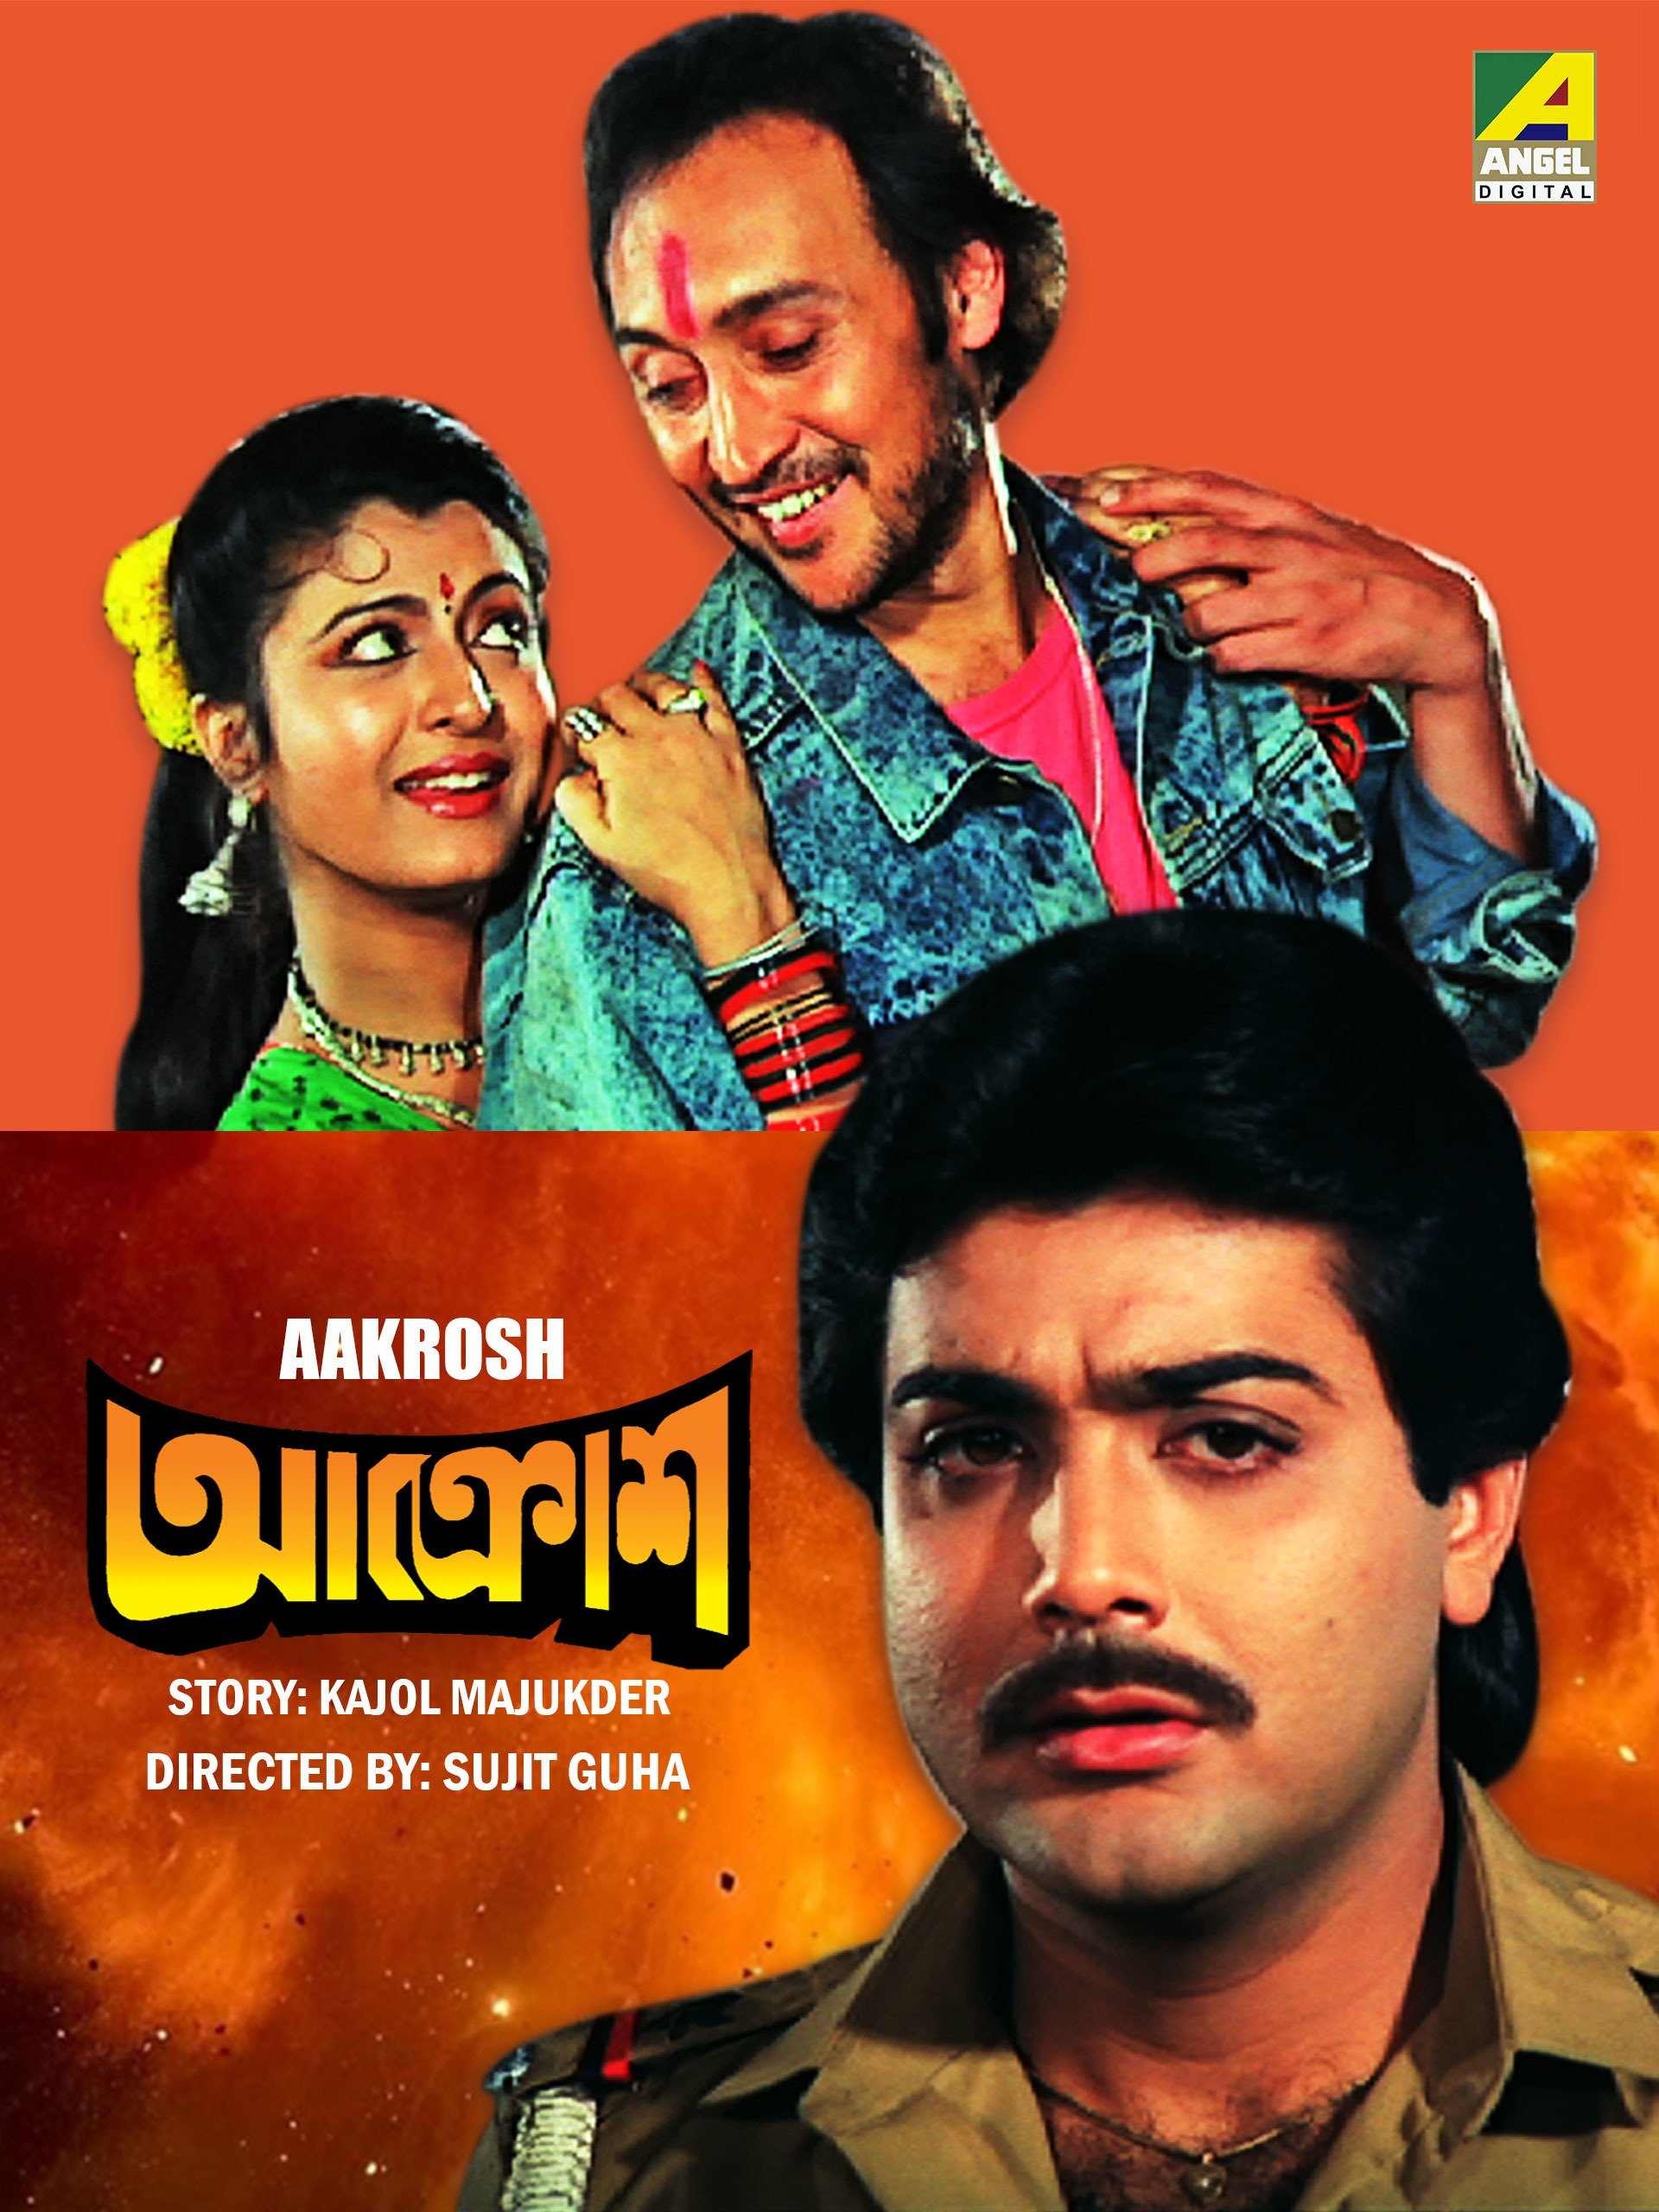 Aakrosh 2020 Bengali Movie 720p HDRip ESubs 1GB MKV